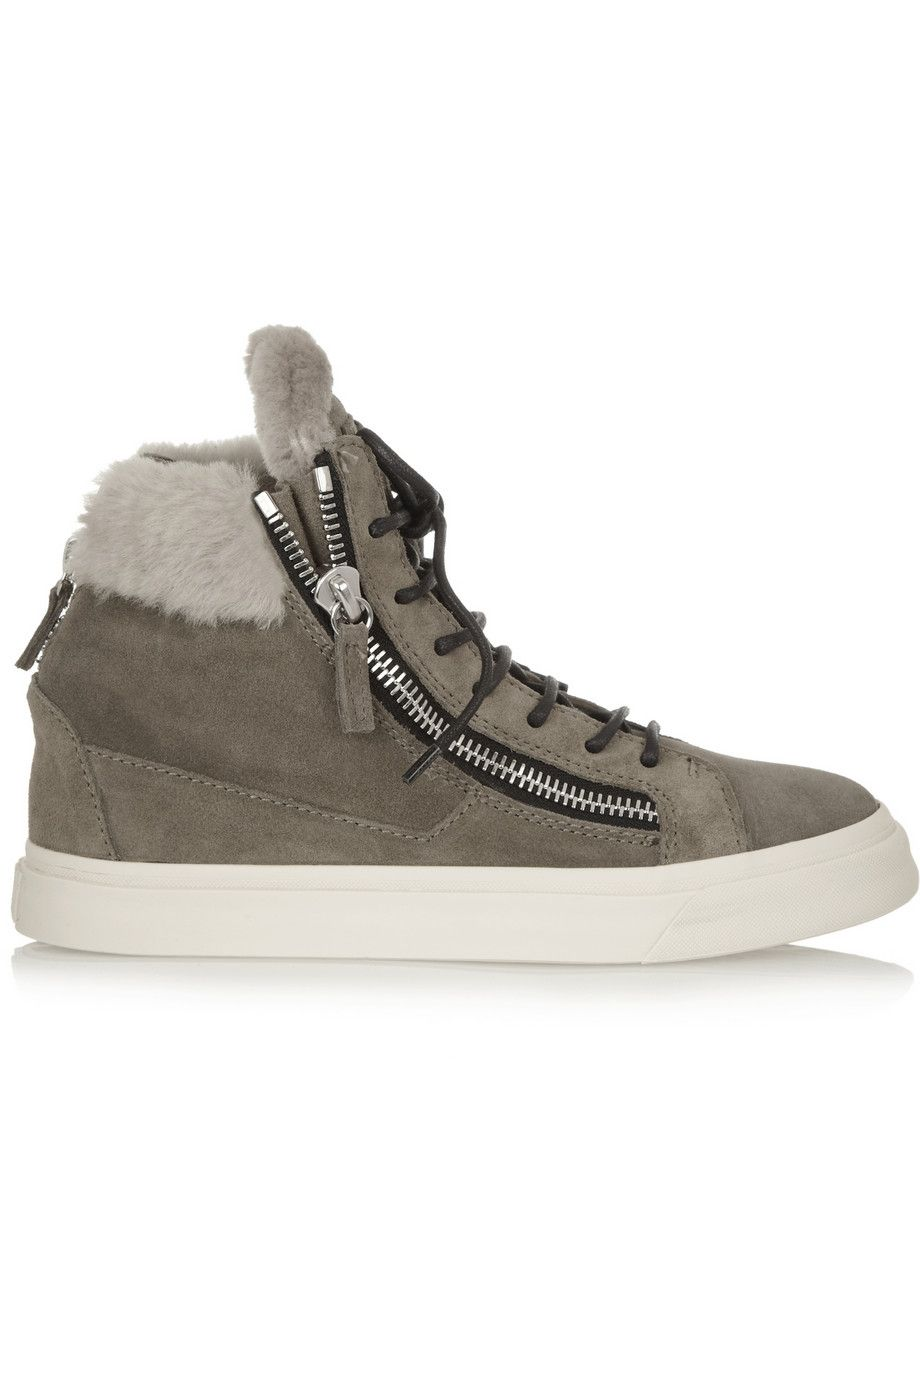 Giuseppe Zanotti Shearling May London High-Top Sneakers Discount Footaction mpNfEL